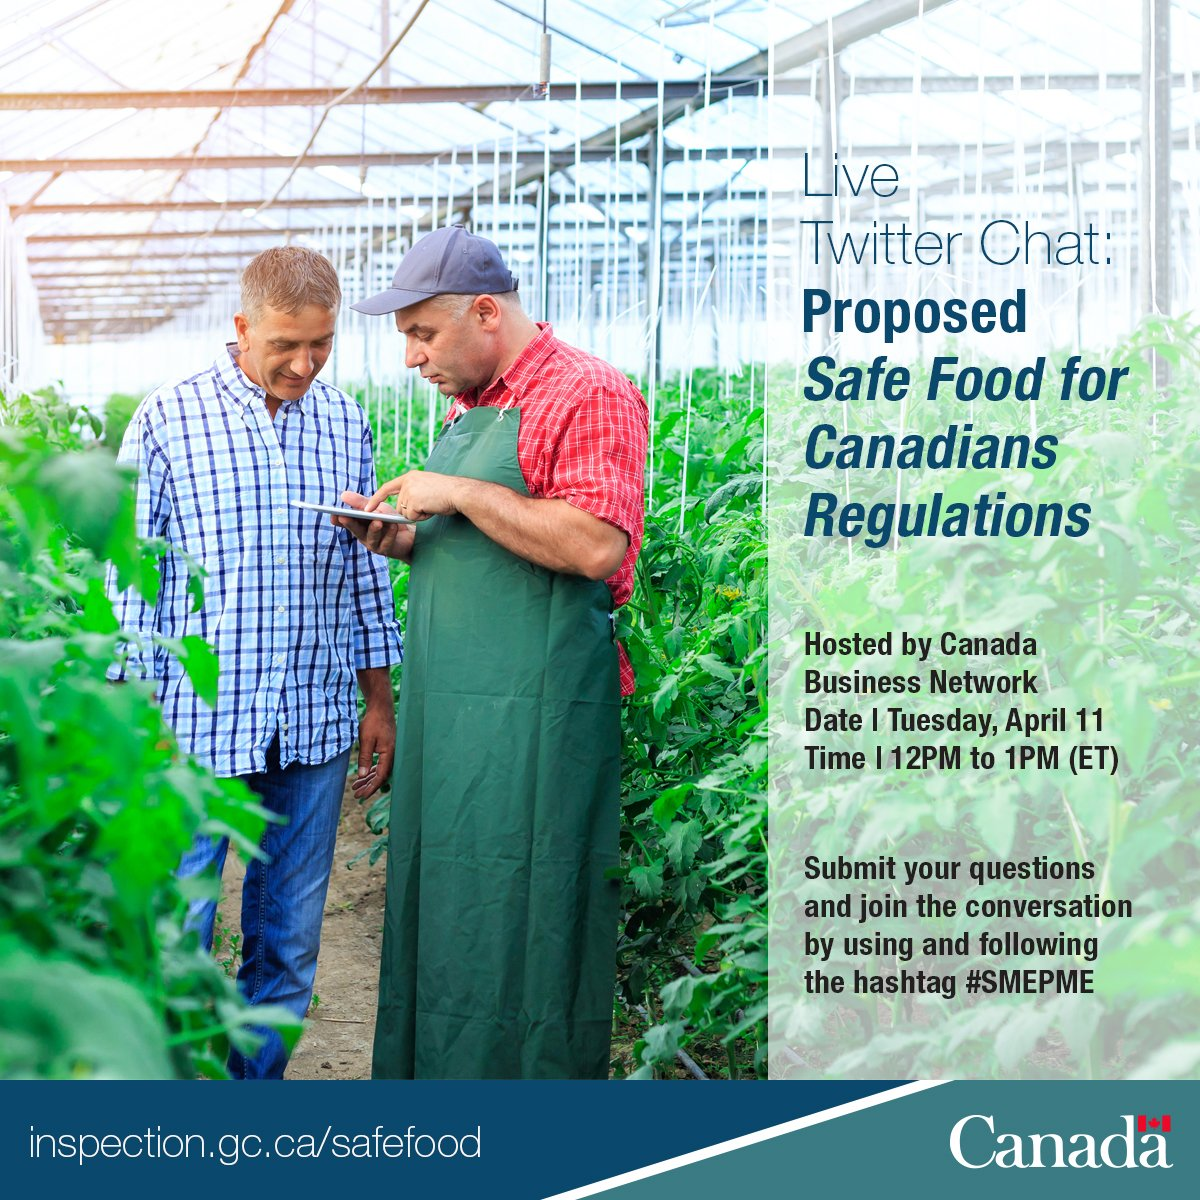 Learn abt #SafeFoodCan via upcoming live chat hosted by @canadabusiness Mark your calendar. #SMEPME https://t.co/zbYj1AE3s0 https://t.co/5iW7OBoP4W